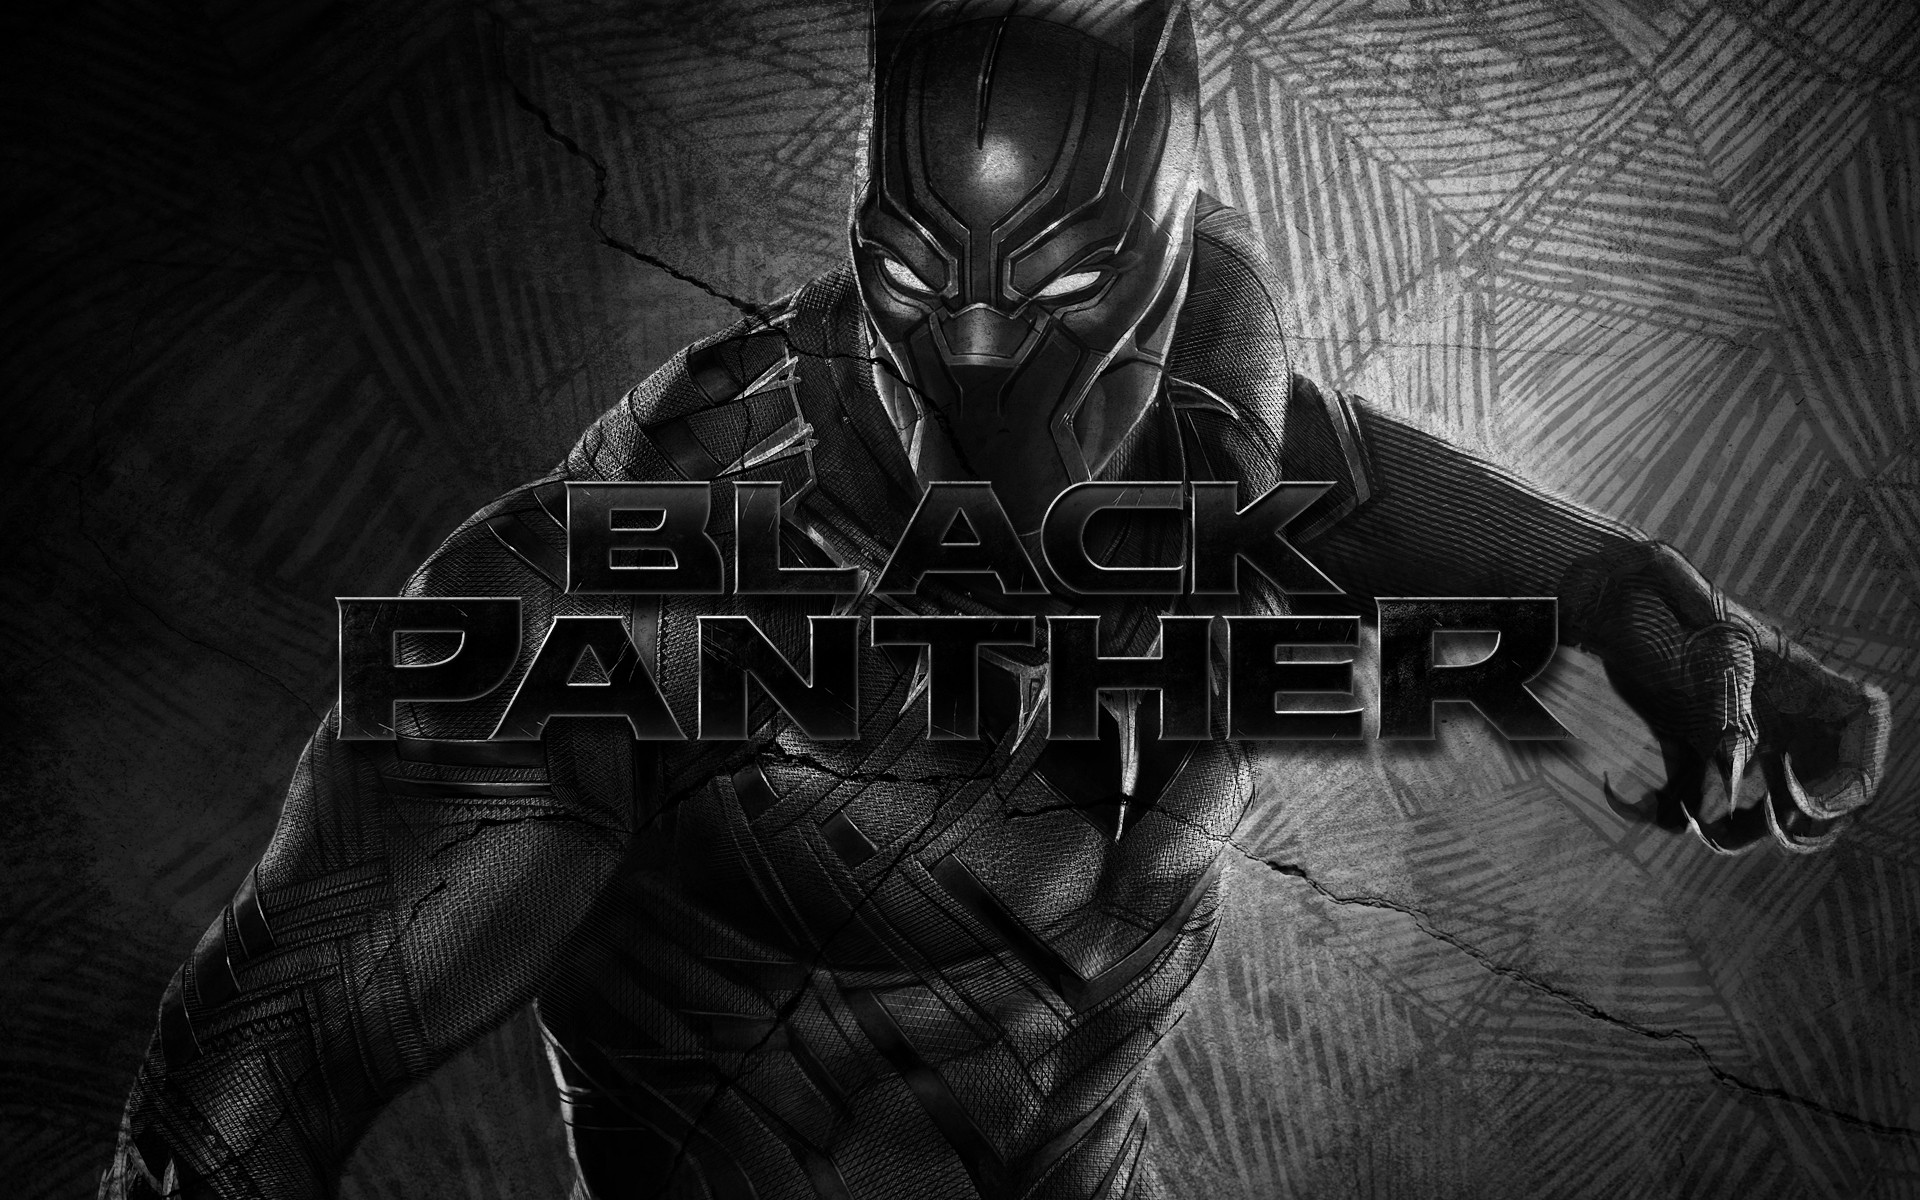 Black Panther Wallpaper by AdminCap on